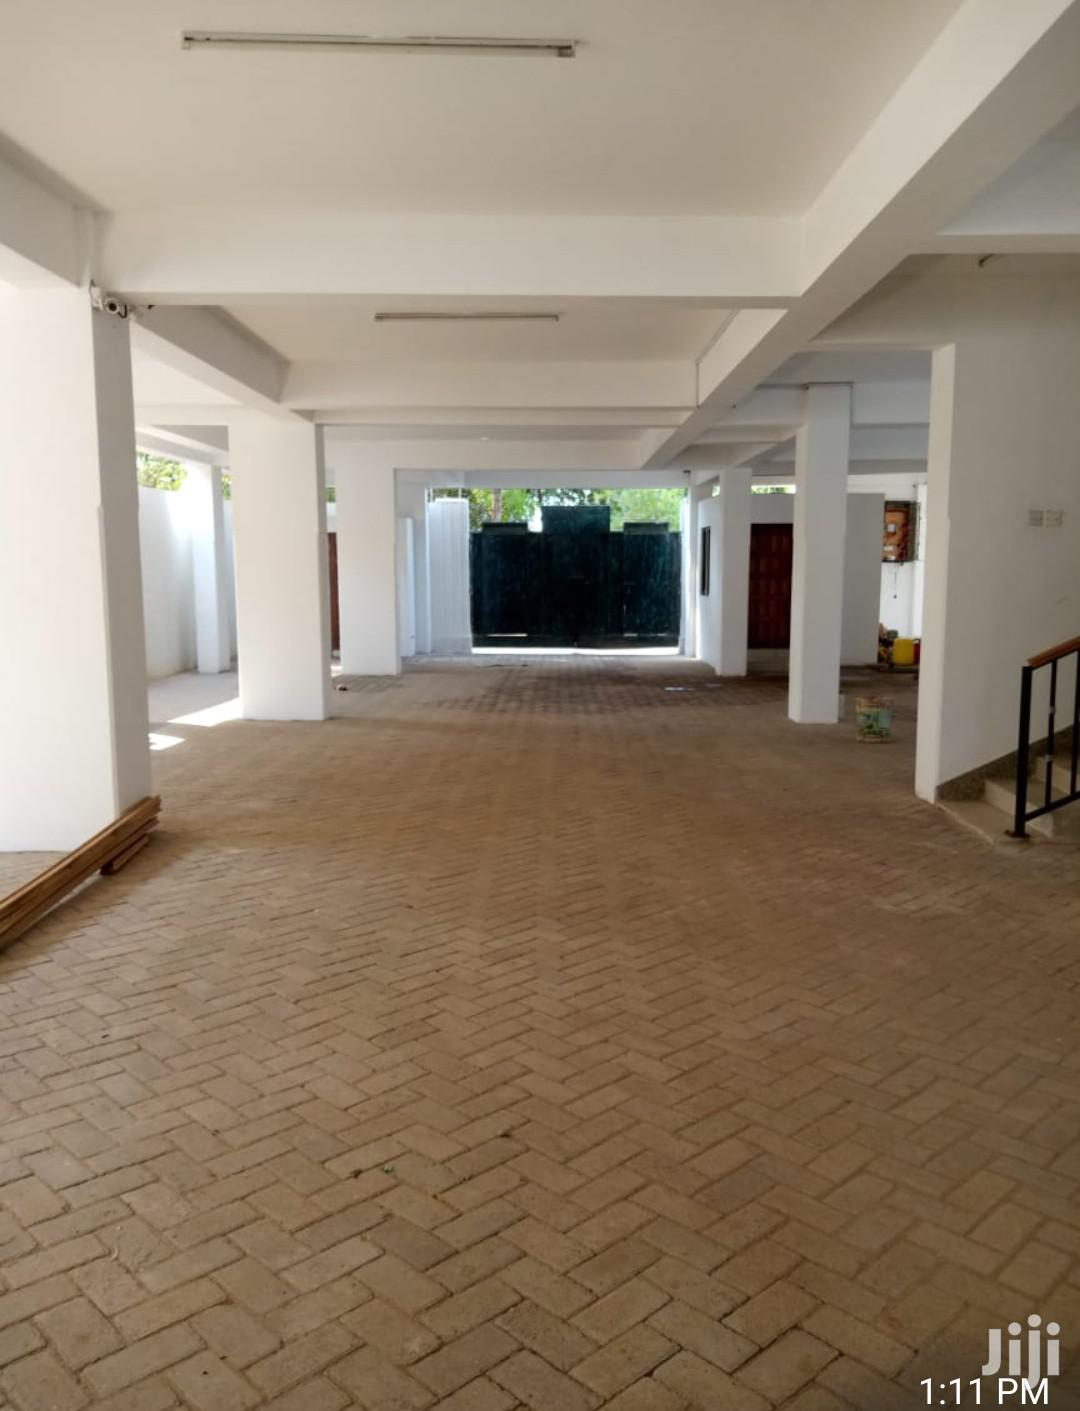 Modern 3brm for Sale in Nyali | Houses & Apartments For Sale for sale in Nyali, Mombasa, Kenya